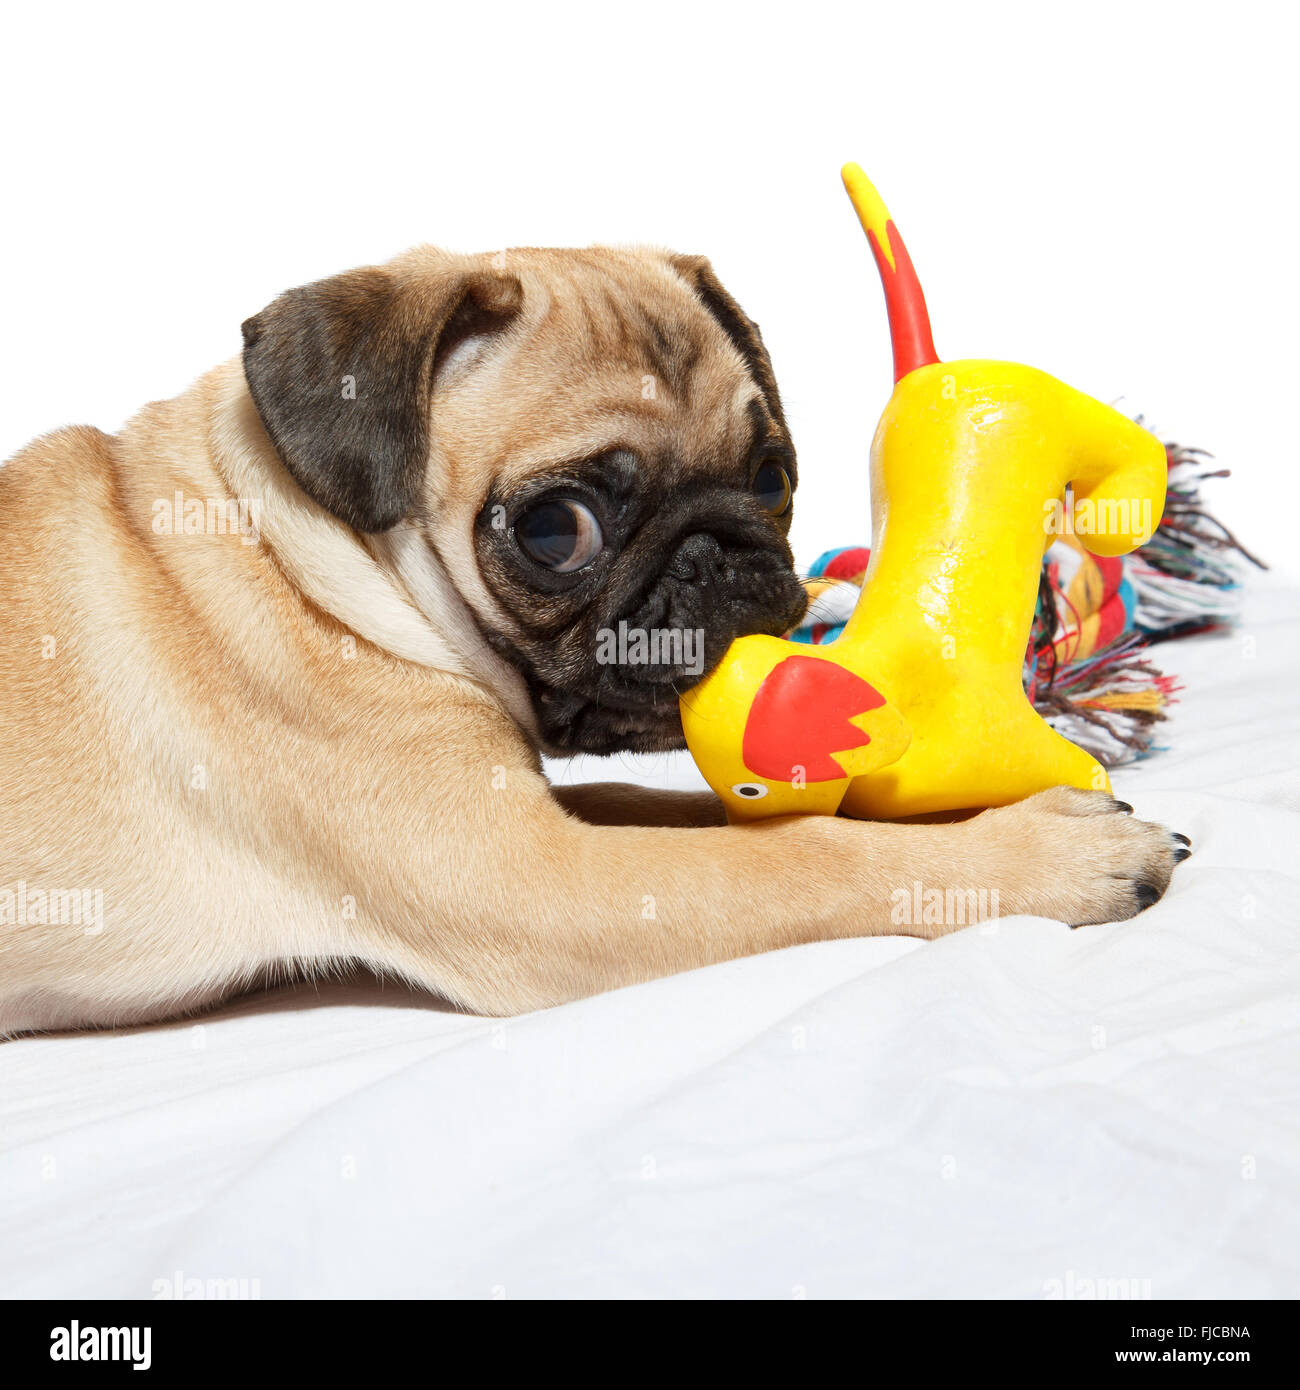 Pug playing with toy - Stock Image